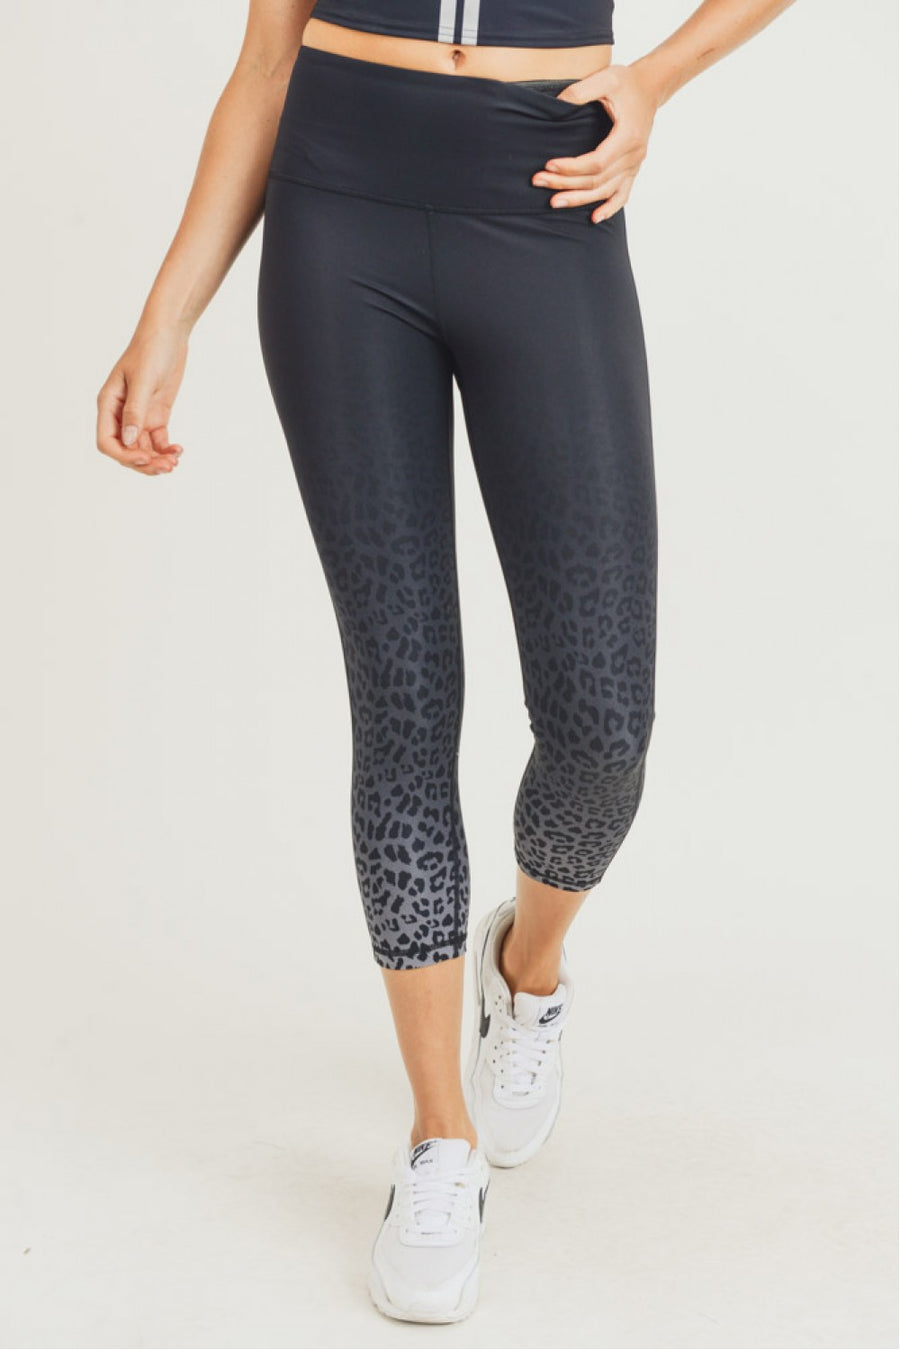 """Party Time"" Ombre Leopard Highwaist Capri Leggings"